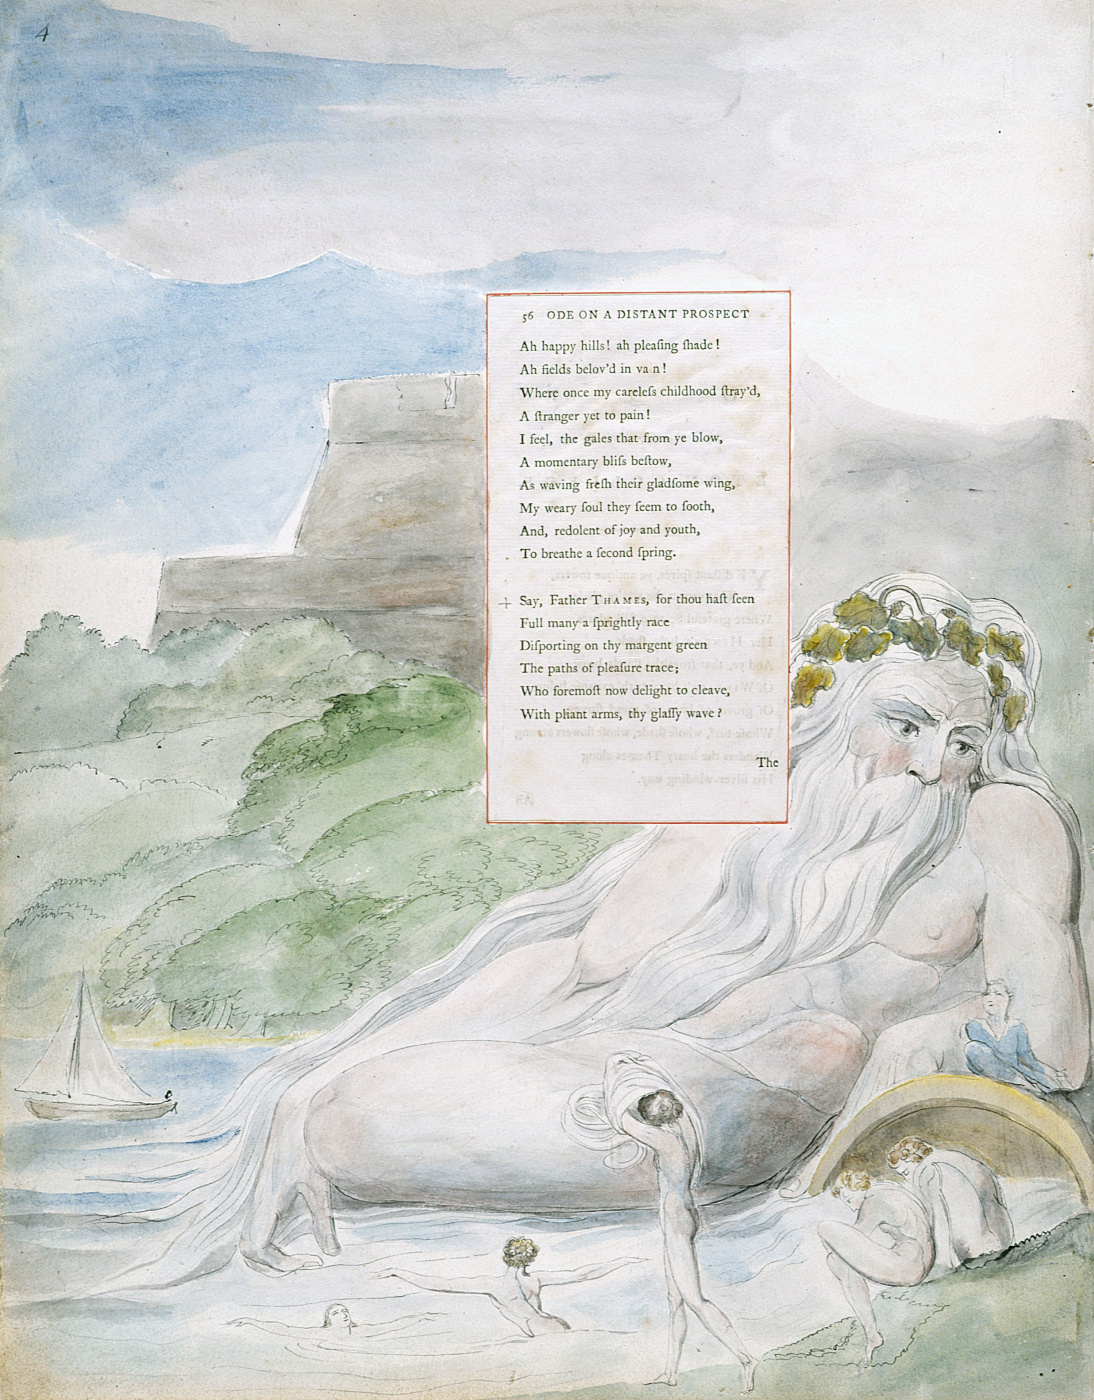 William Blake. Illustrations to the poems. Ode to Eton College. Sheet 4